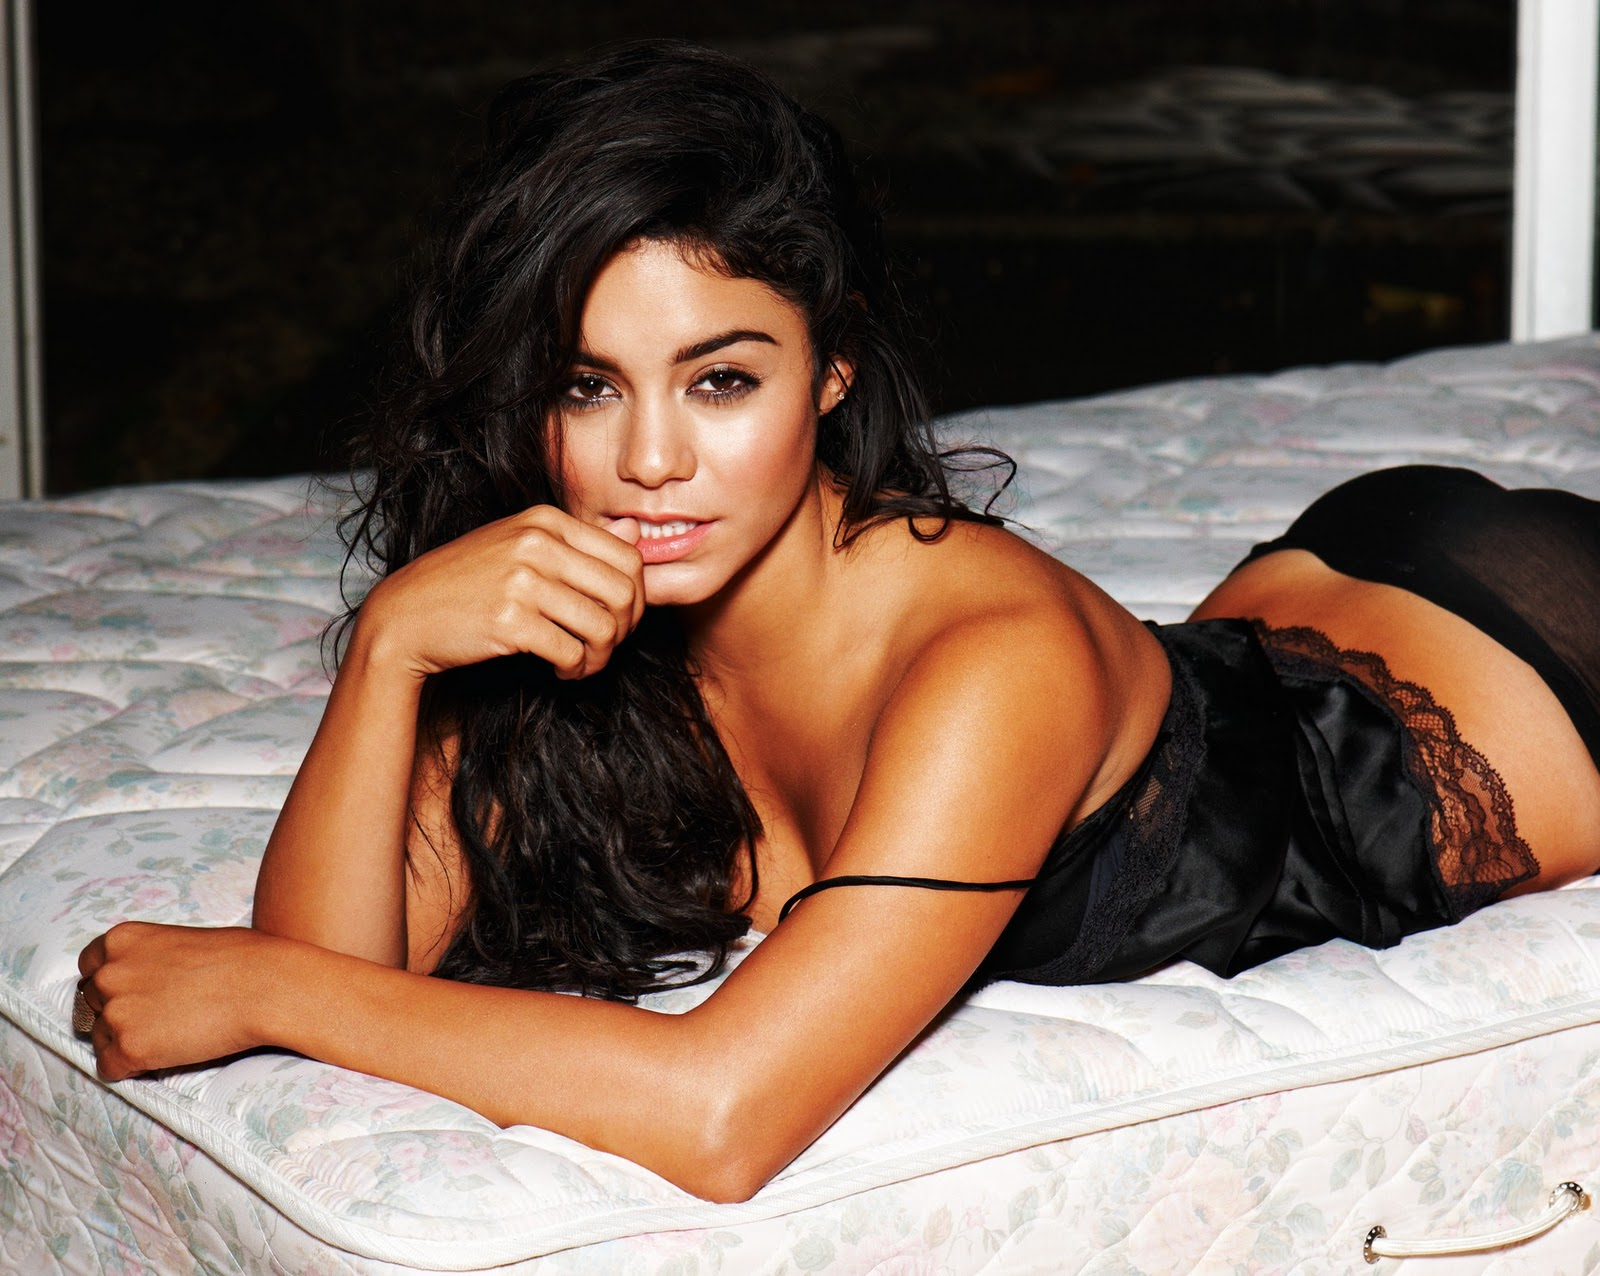 Vanessa Hudgens Hot Pictures 2011 All Hollywood Stars